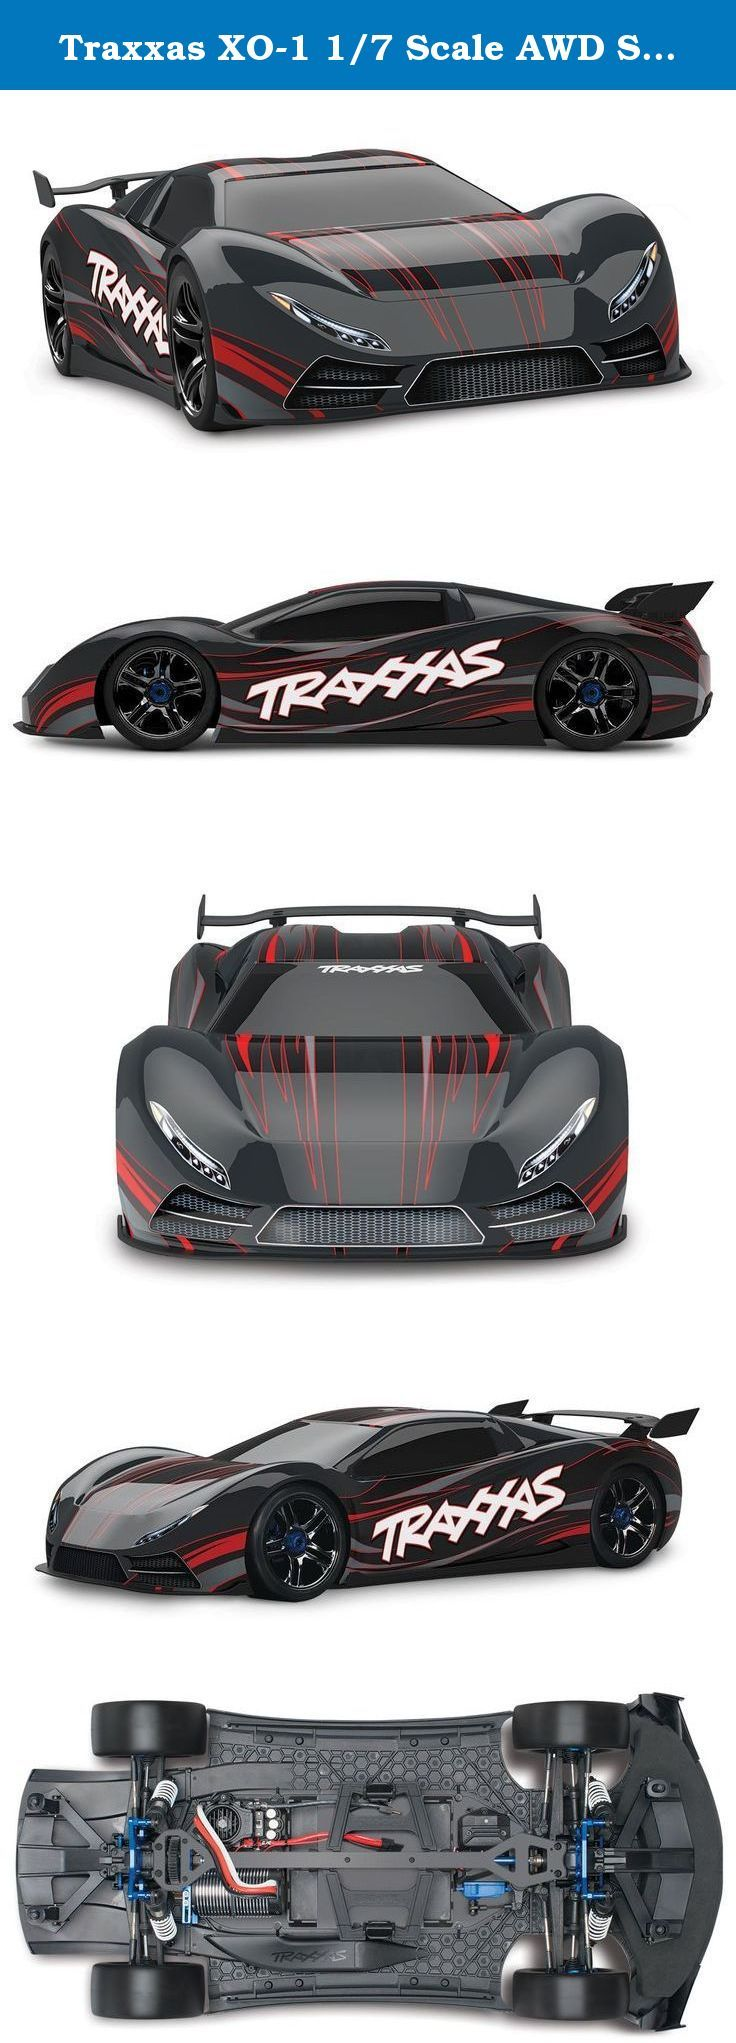 Traxxas Xo 1 1 7 Scale Awd Supercar With Tqi 2 4ghz Radio Tsm Black For 25 Years Traxxas Has Pushed The Boundaries To Find The Next Super Cars Awd Traxxas